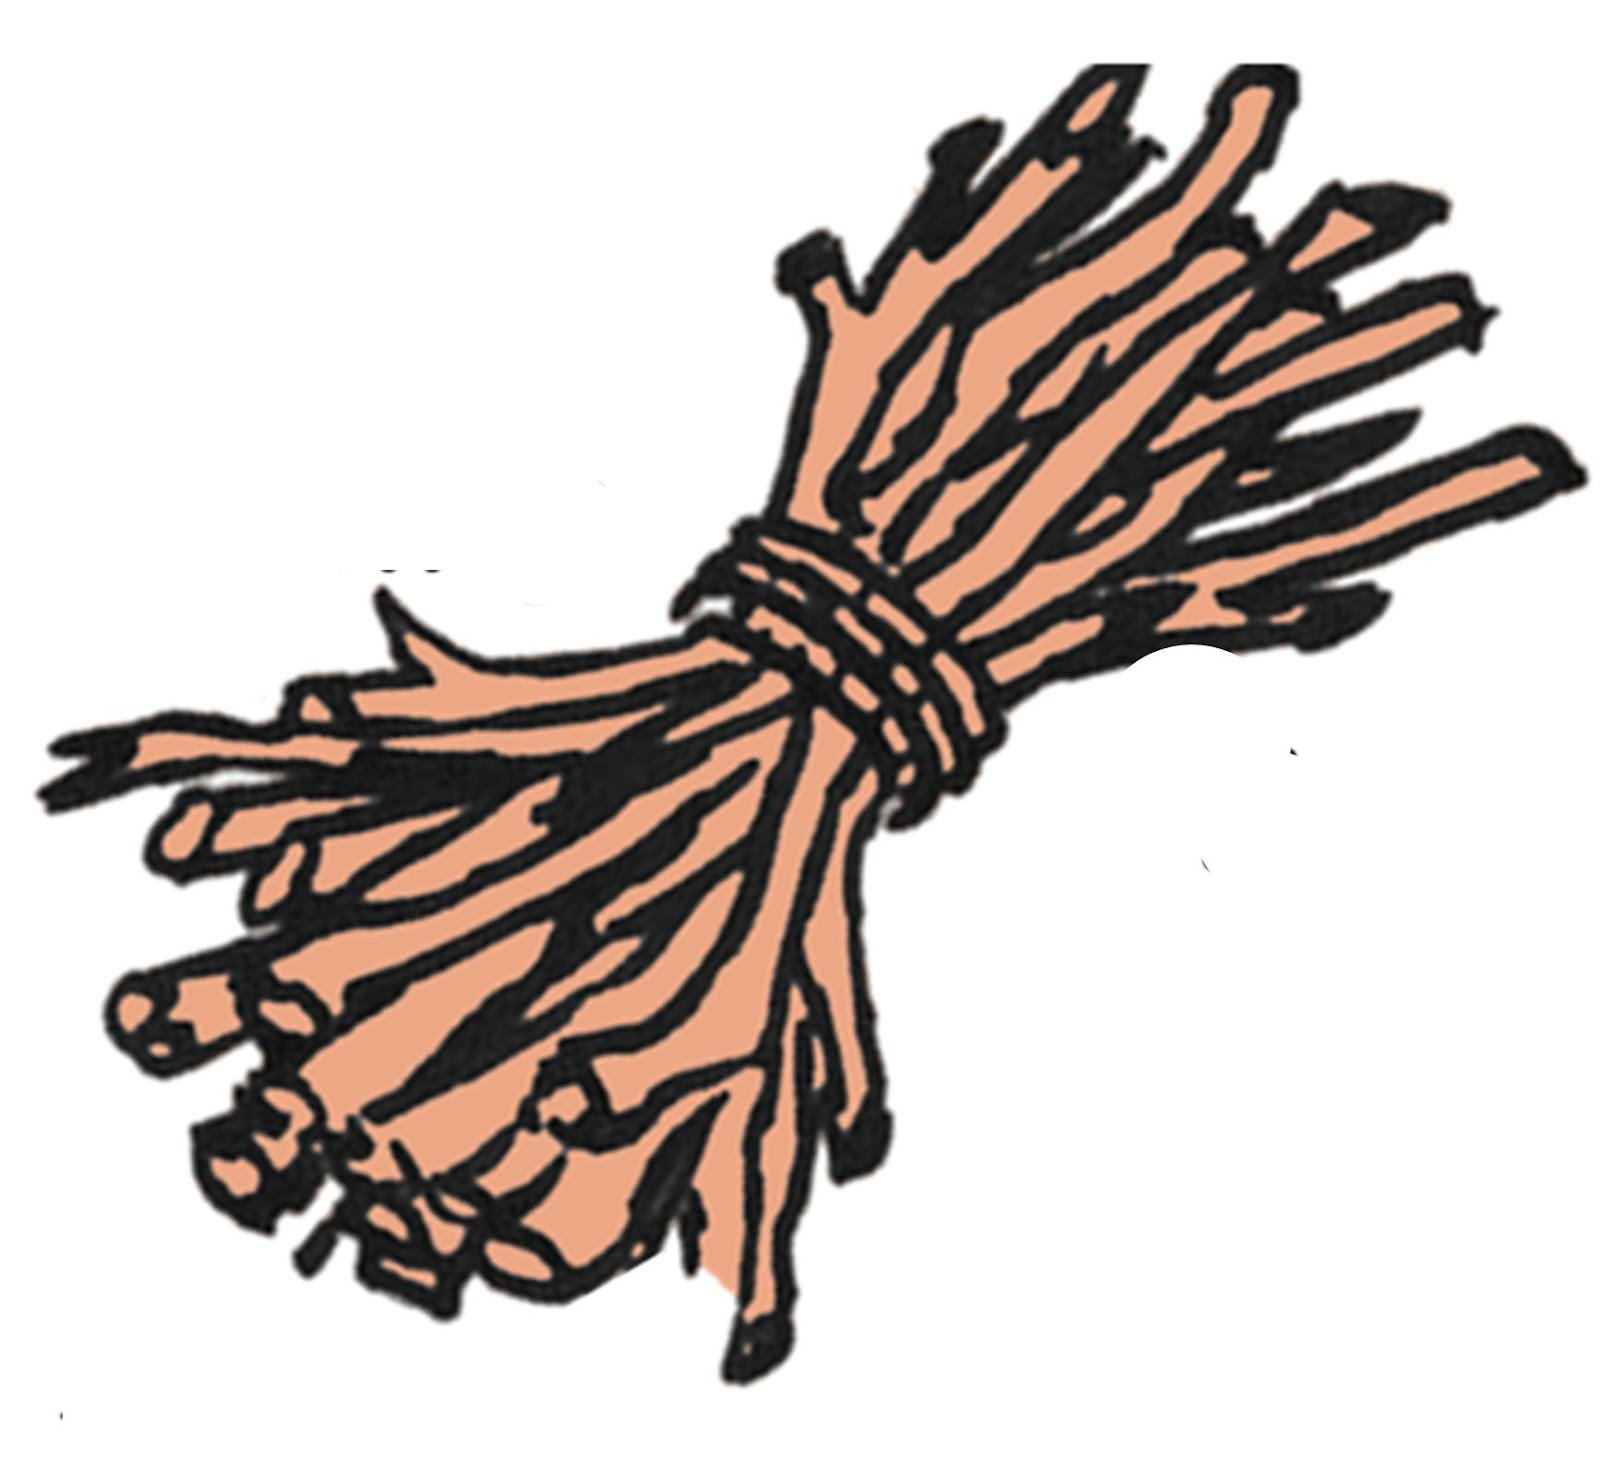 Bundle Of Sticks Clipart.